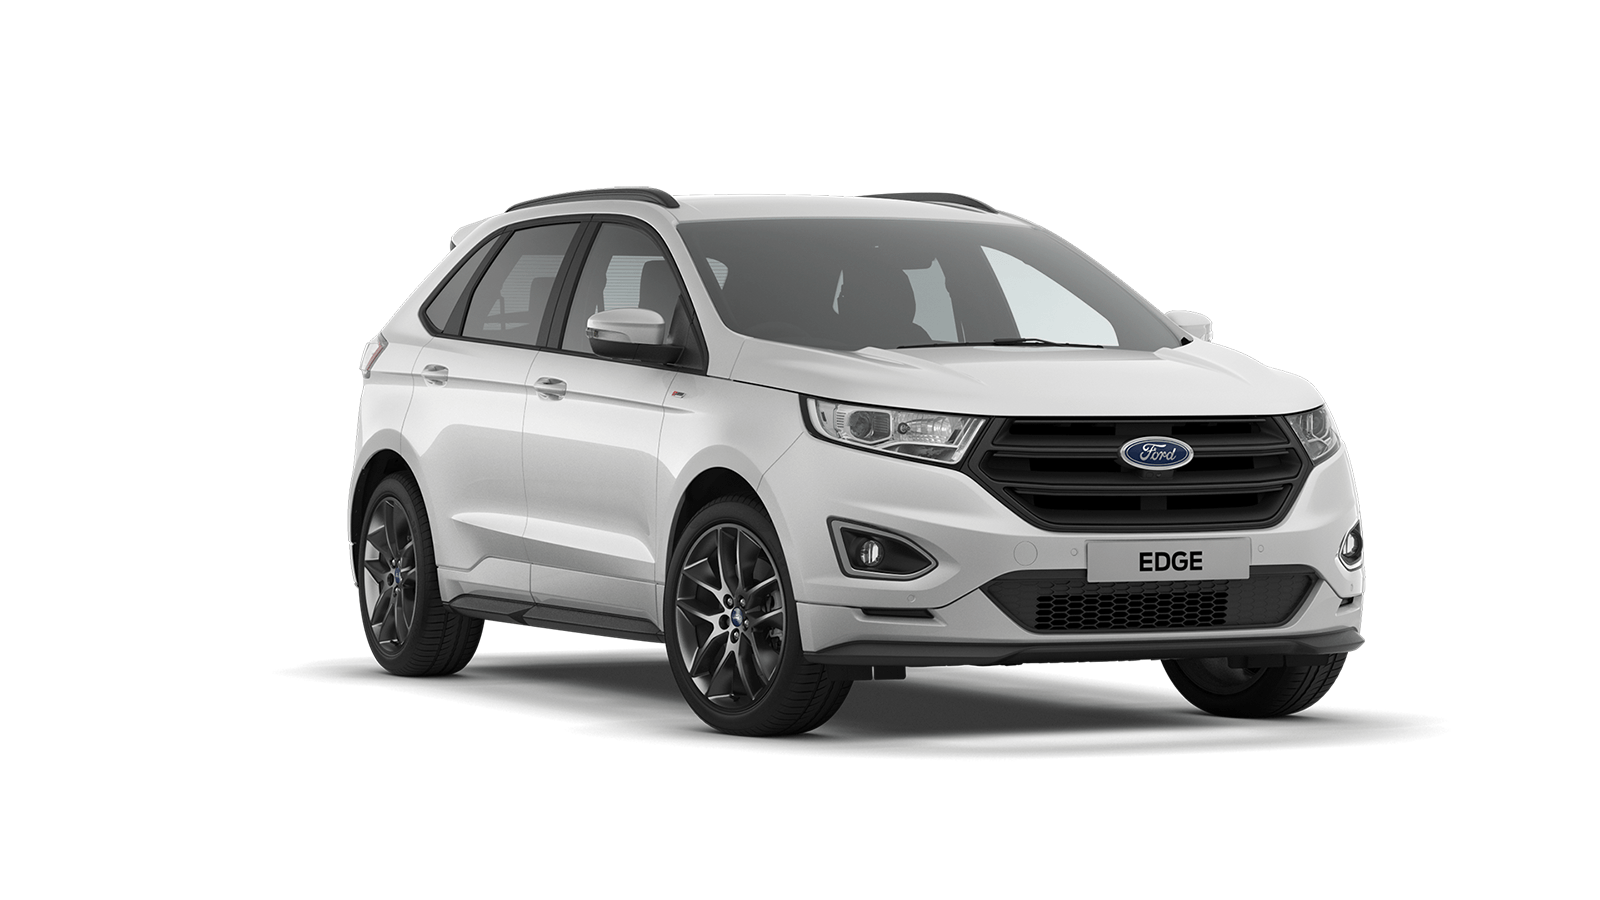 EDGE ST-Line 2.0 Duratorq TDCi 210PS AWD